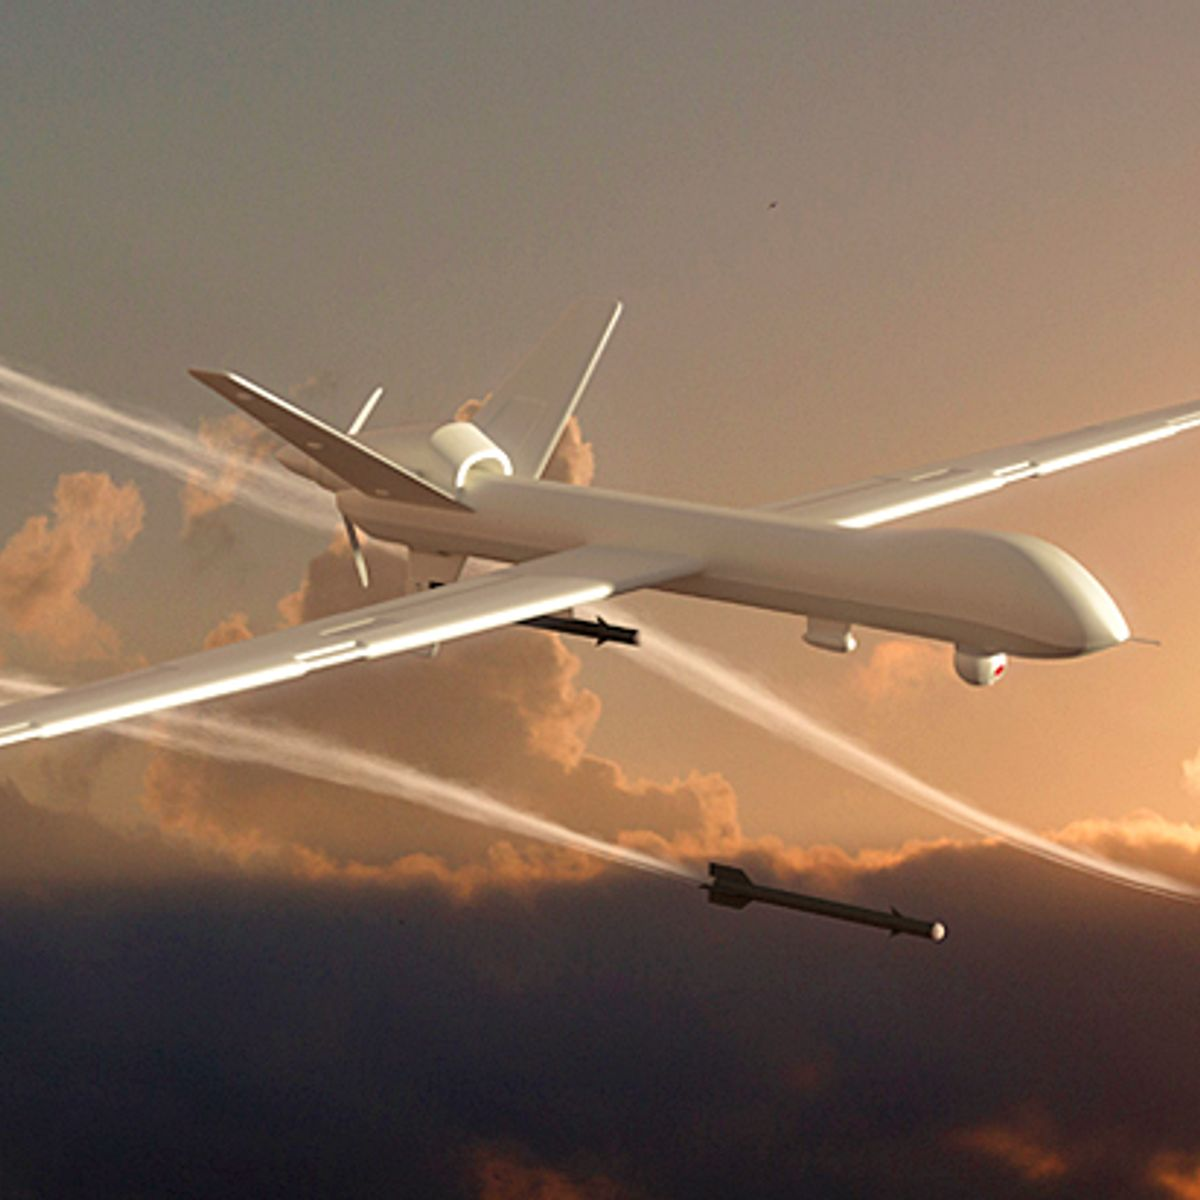 Large military-grade drones could soon be flying over your backyard